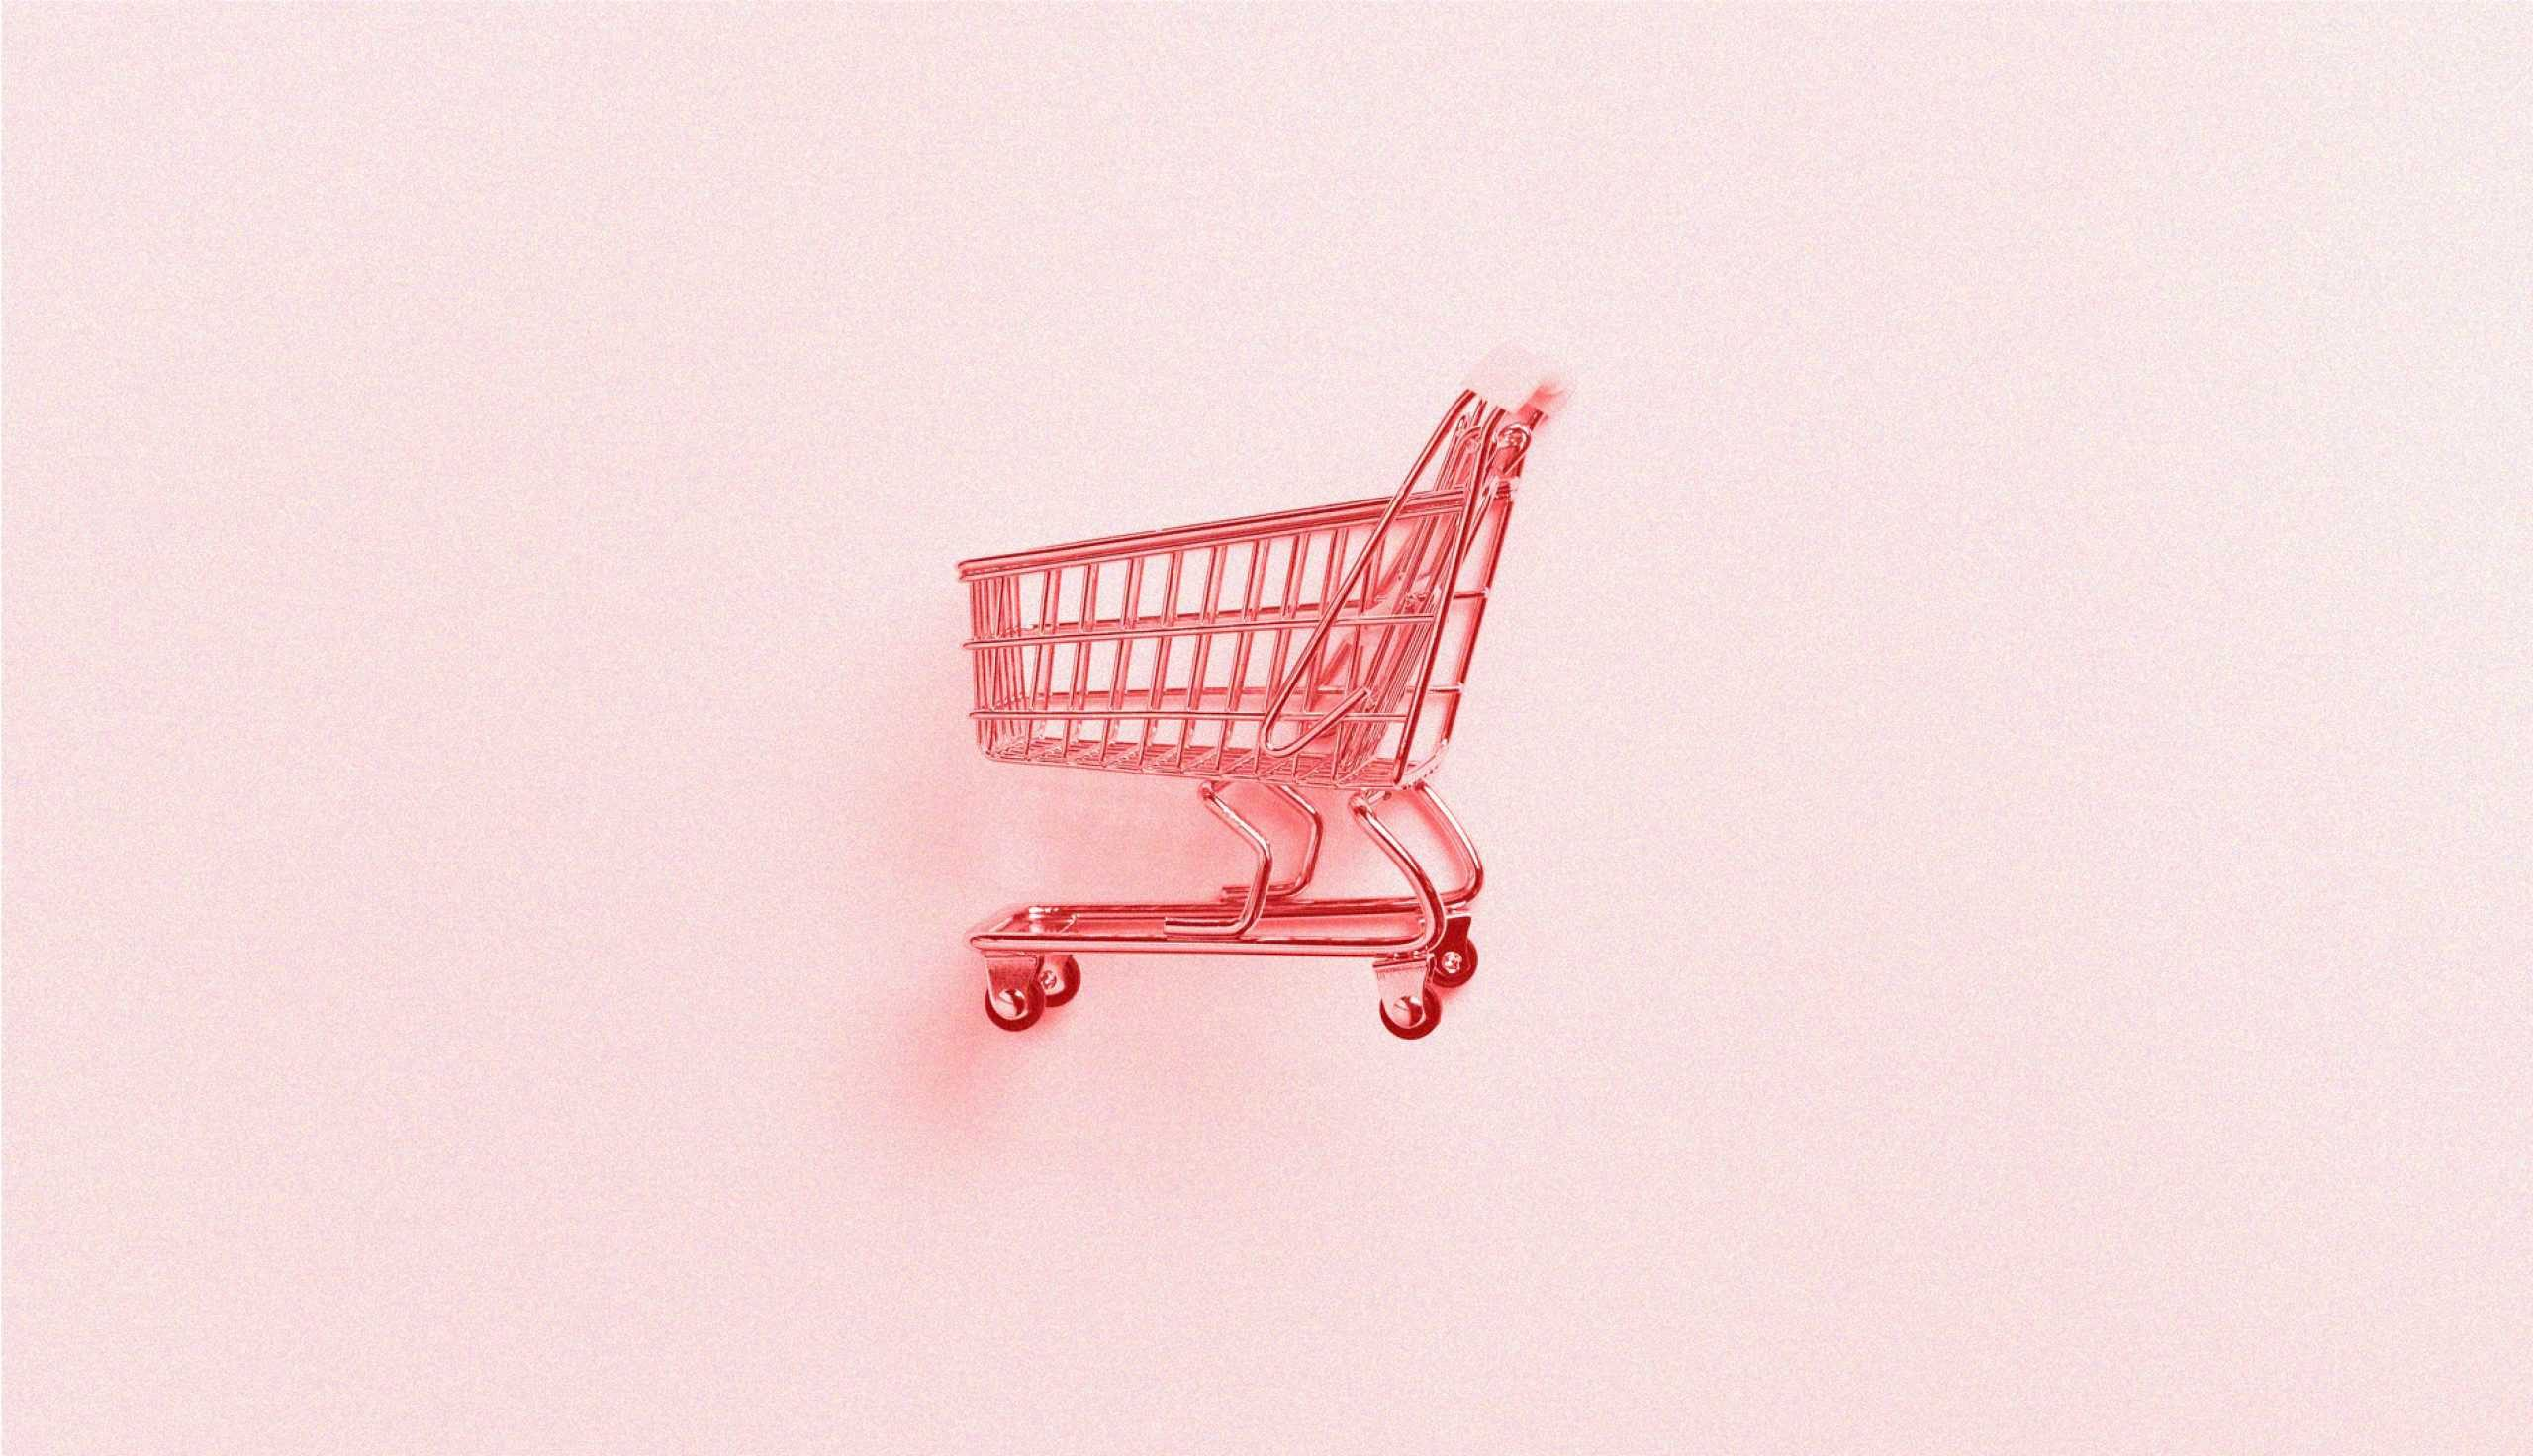 pink grocery cart on pink background